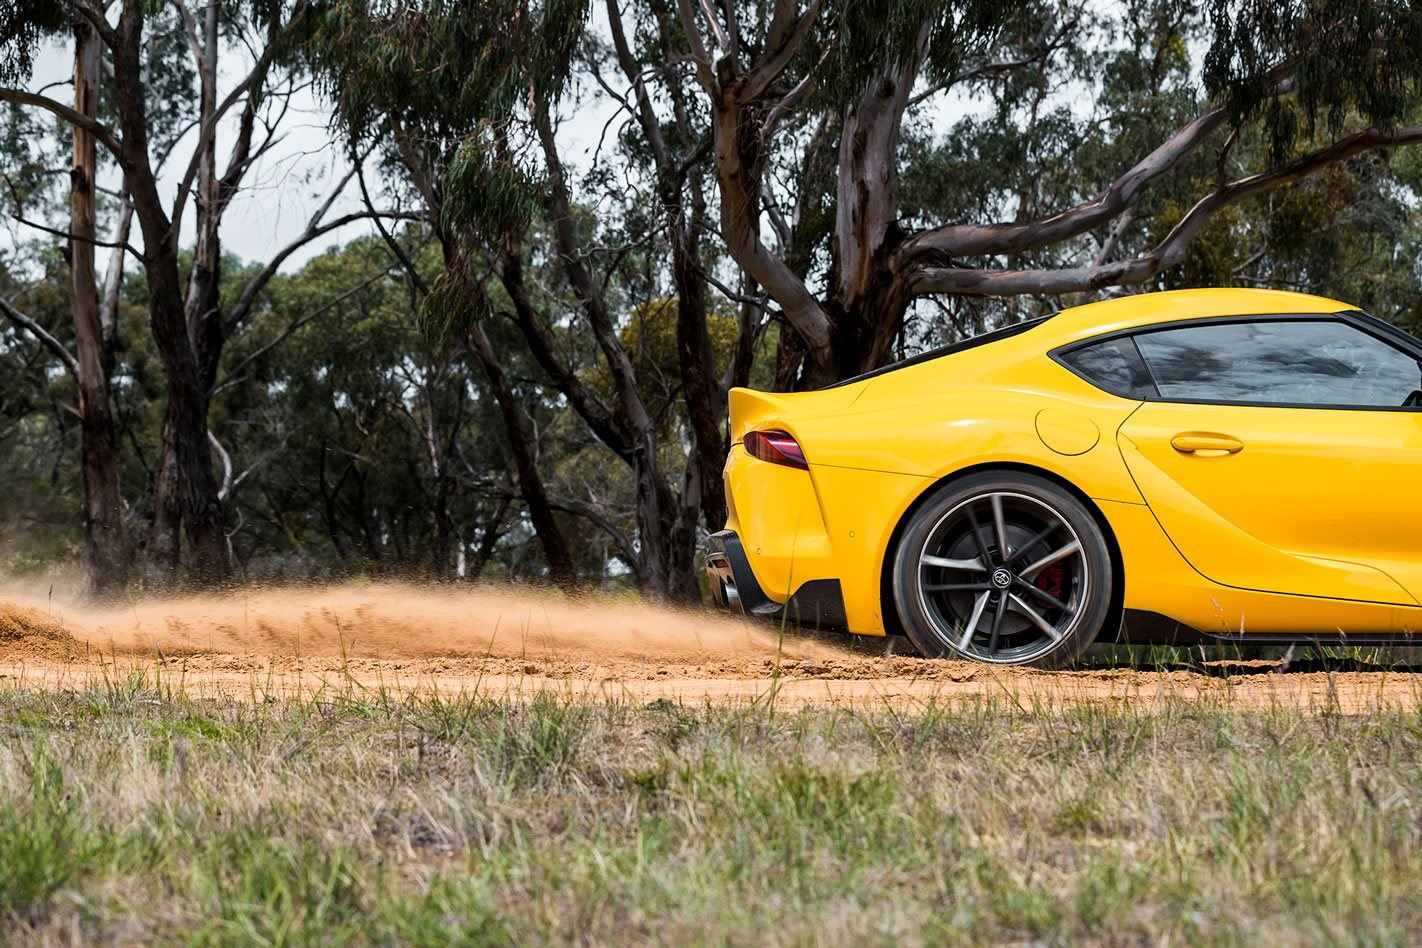 The 10 quickest cars of Wheels Car of the Year 2020